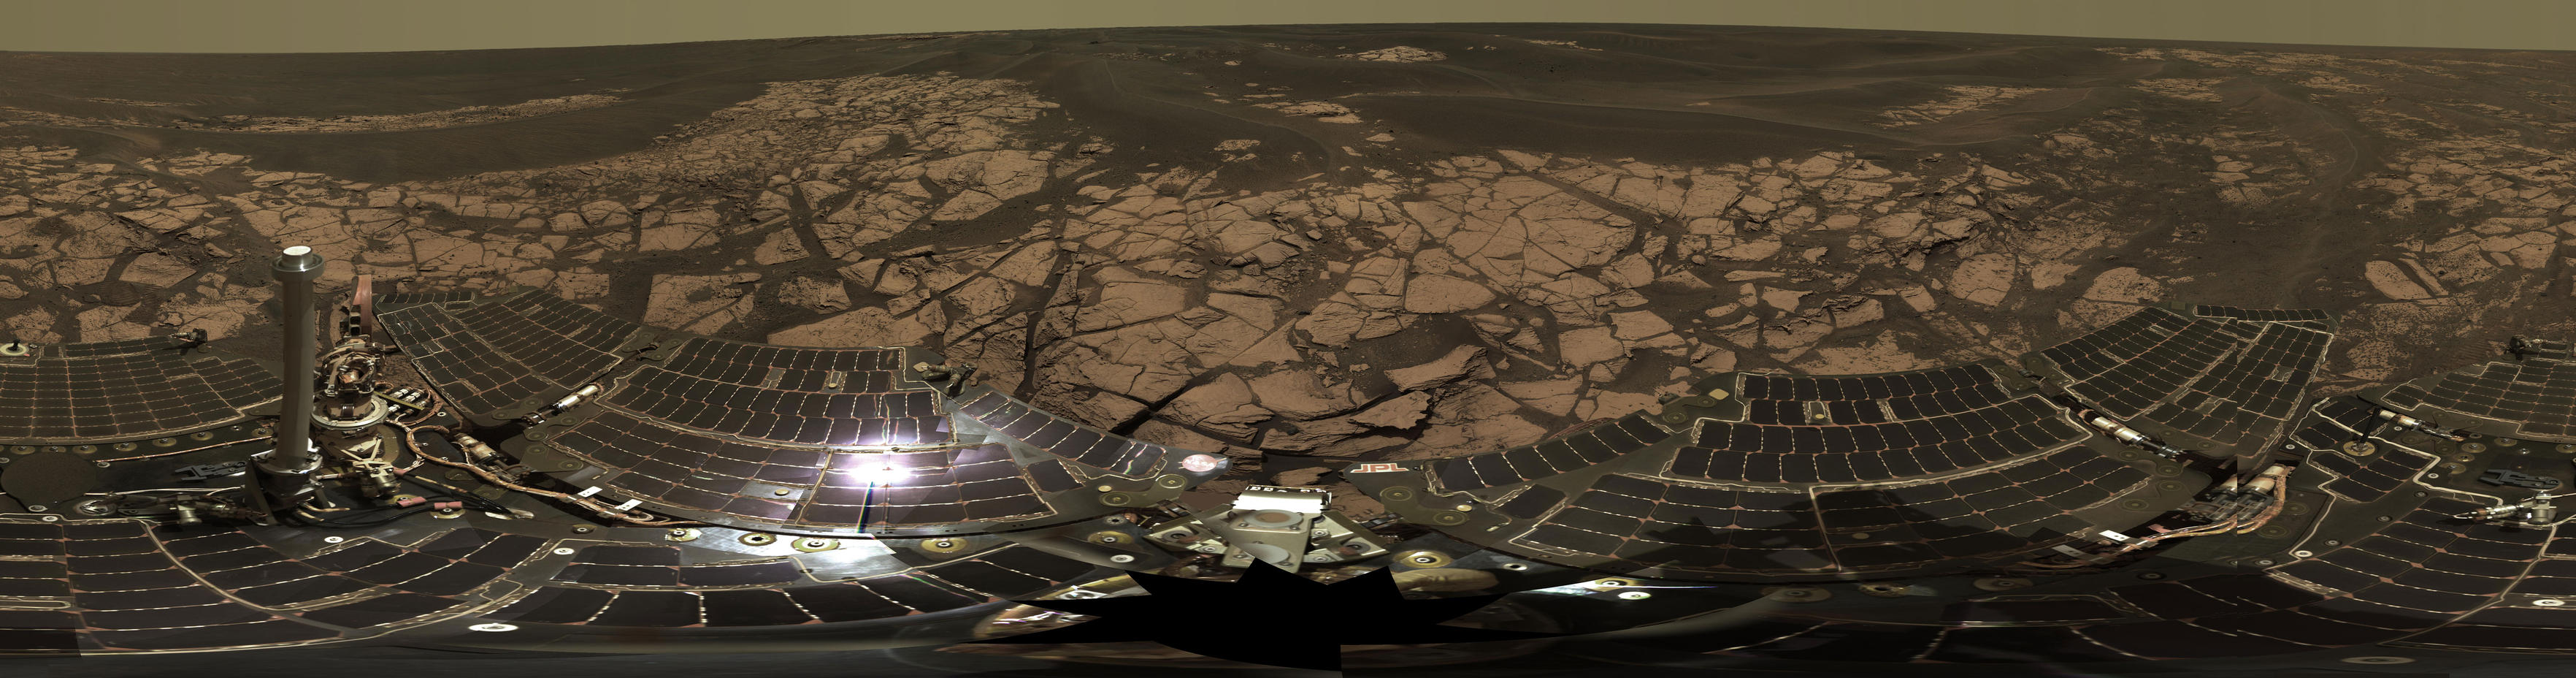 "This is the Opportunity ""Erebus Rim"" panorama, acquired on sols 652 to 663 (Nov. 23 to Dec. 5, 2005 ), as Opportunity was exploring sand dunes and outcrop rocks in Meridiani Planum."